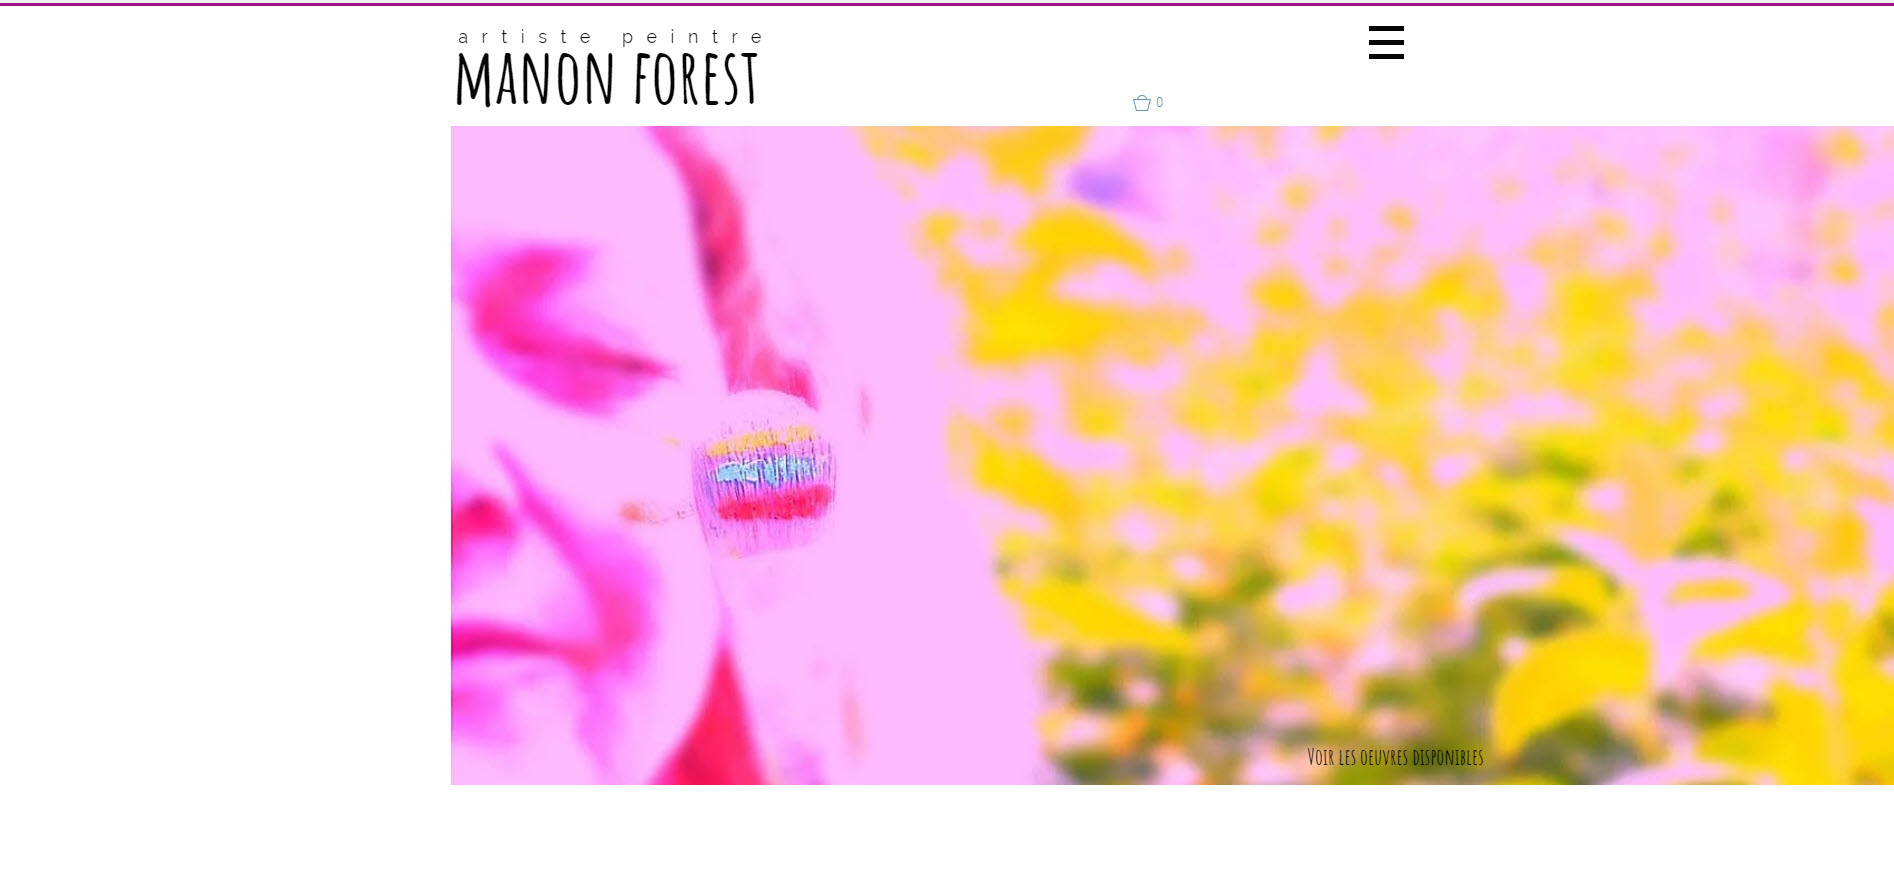 Manon Forest artiste peintre